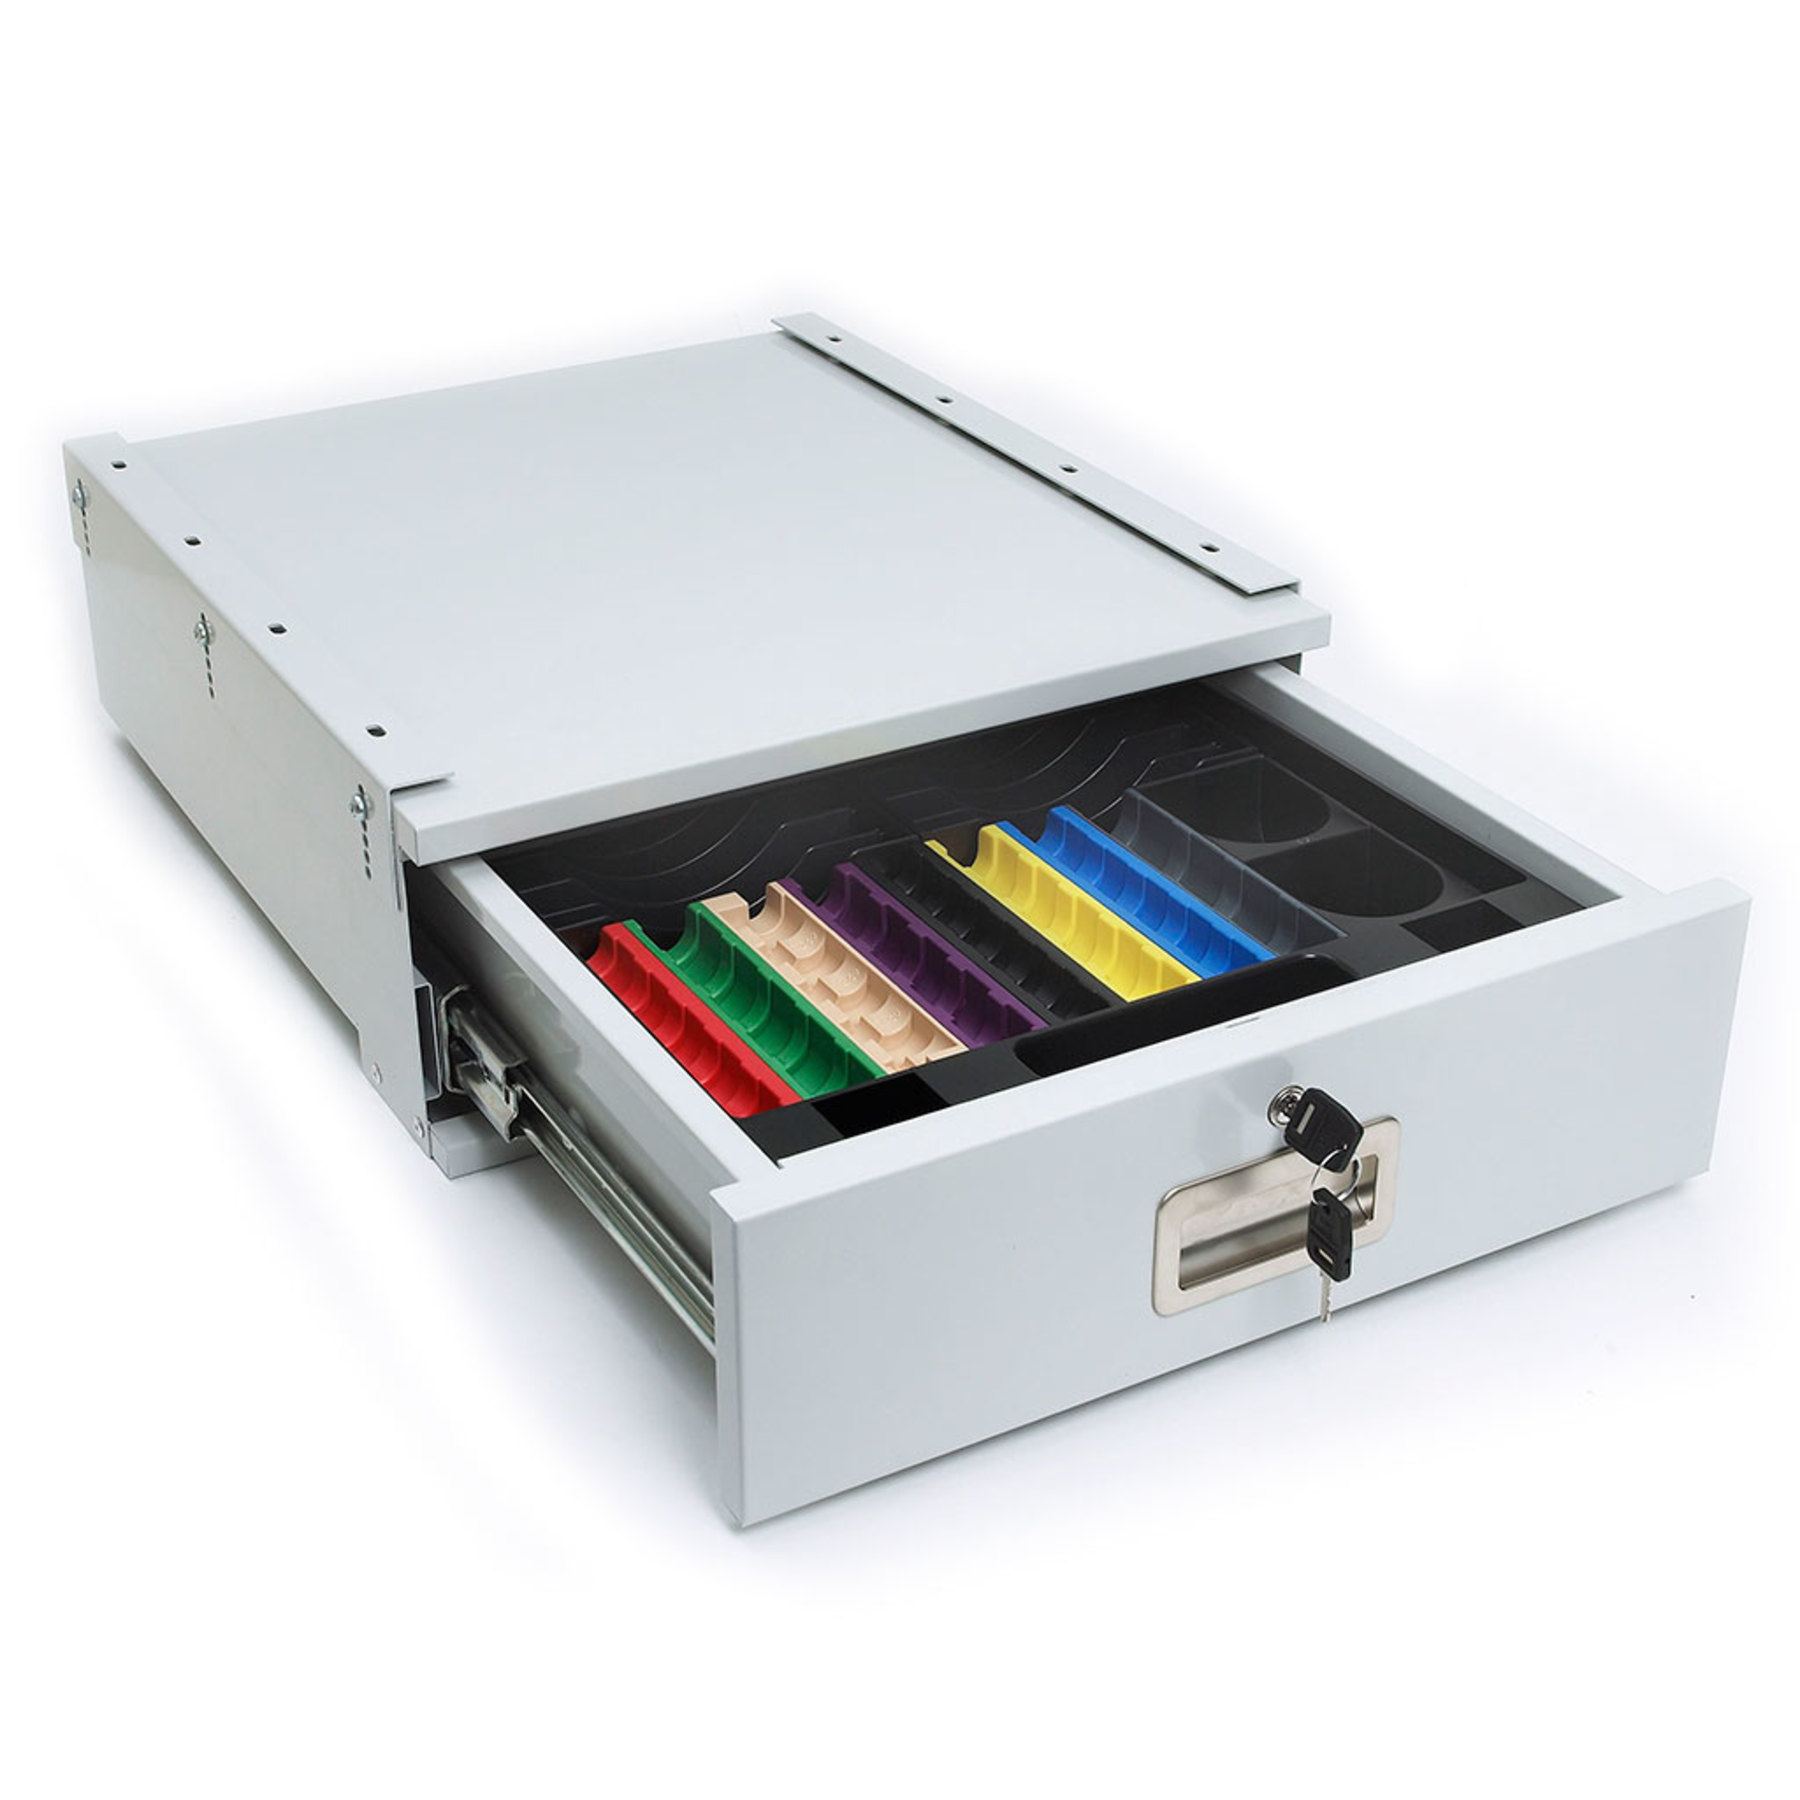 Hdc180 Heavy Duty Under Counter Cash Drawer Cash Drawers